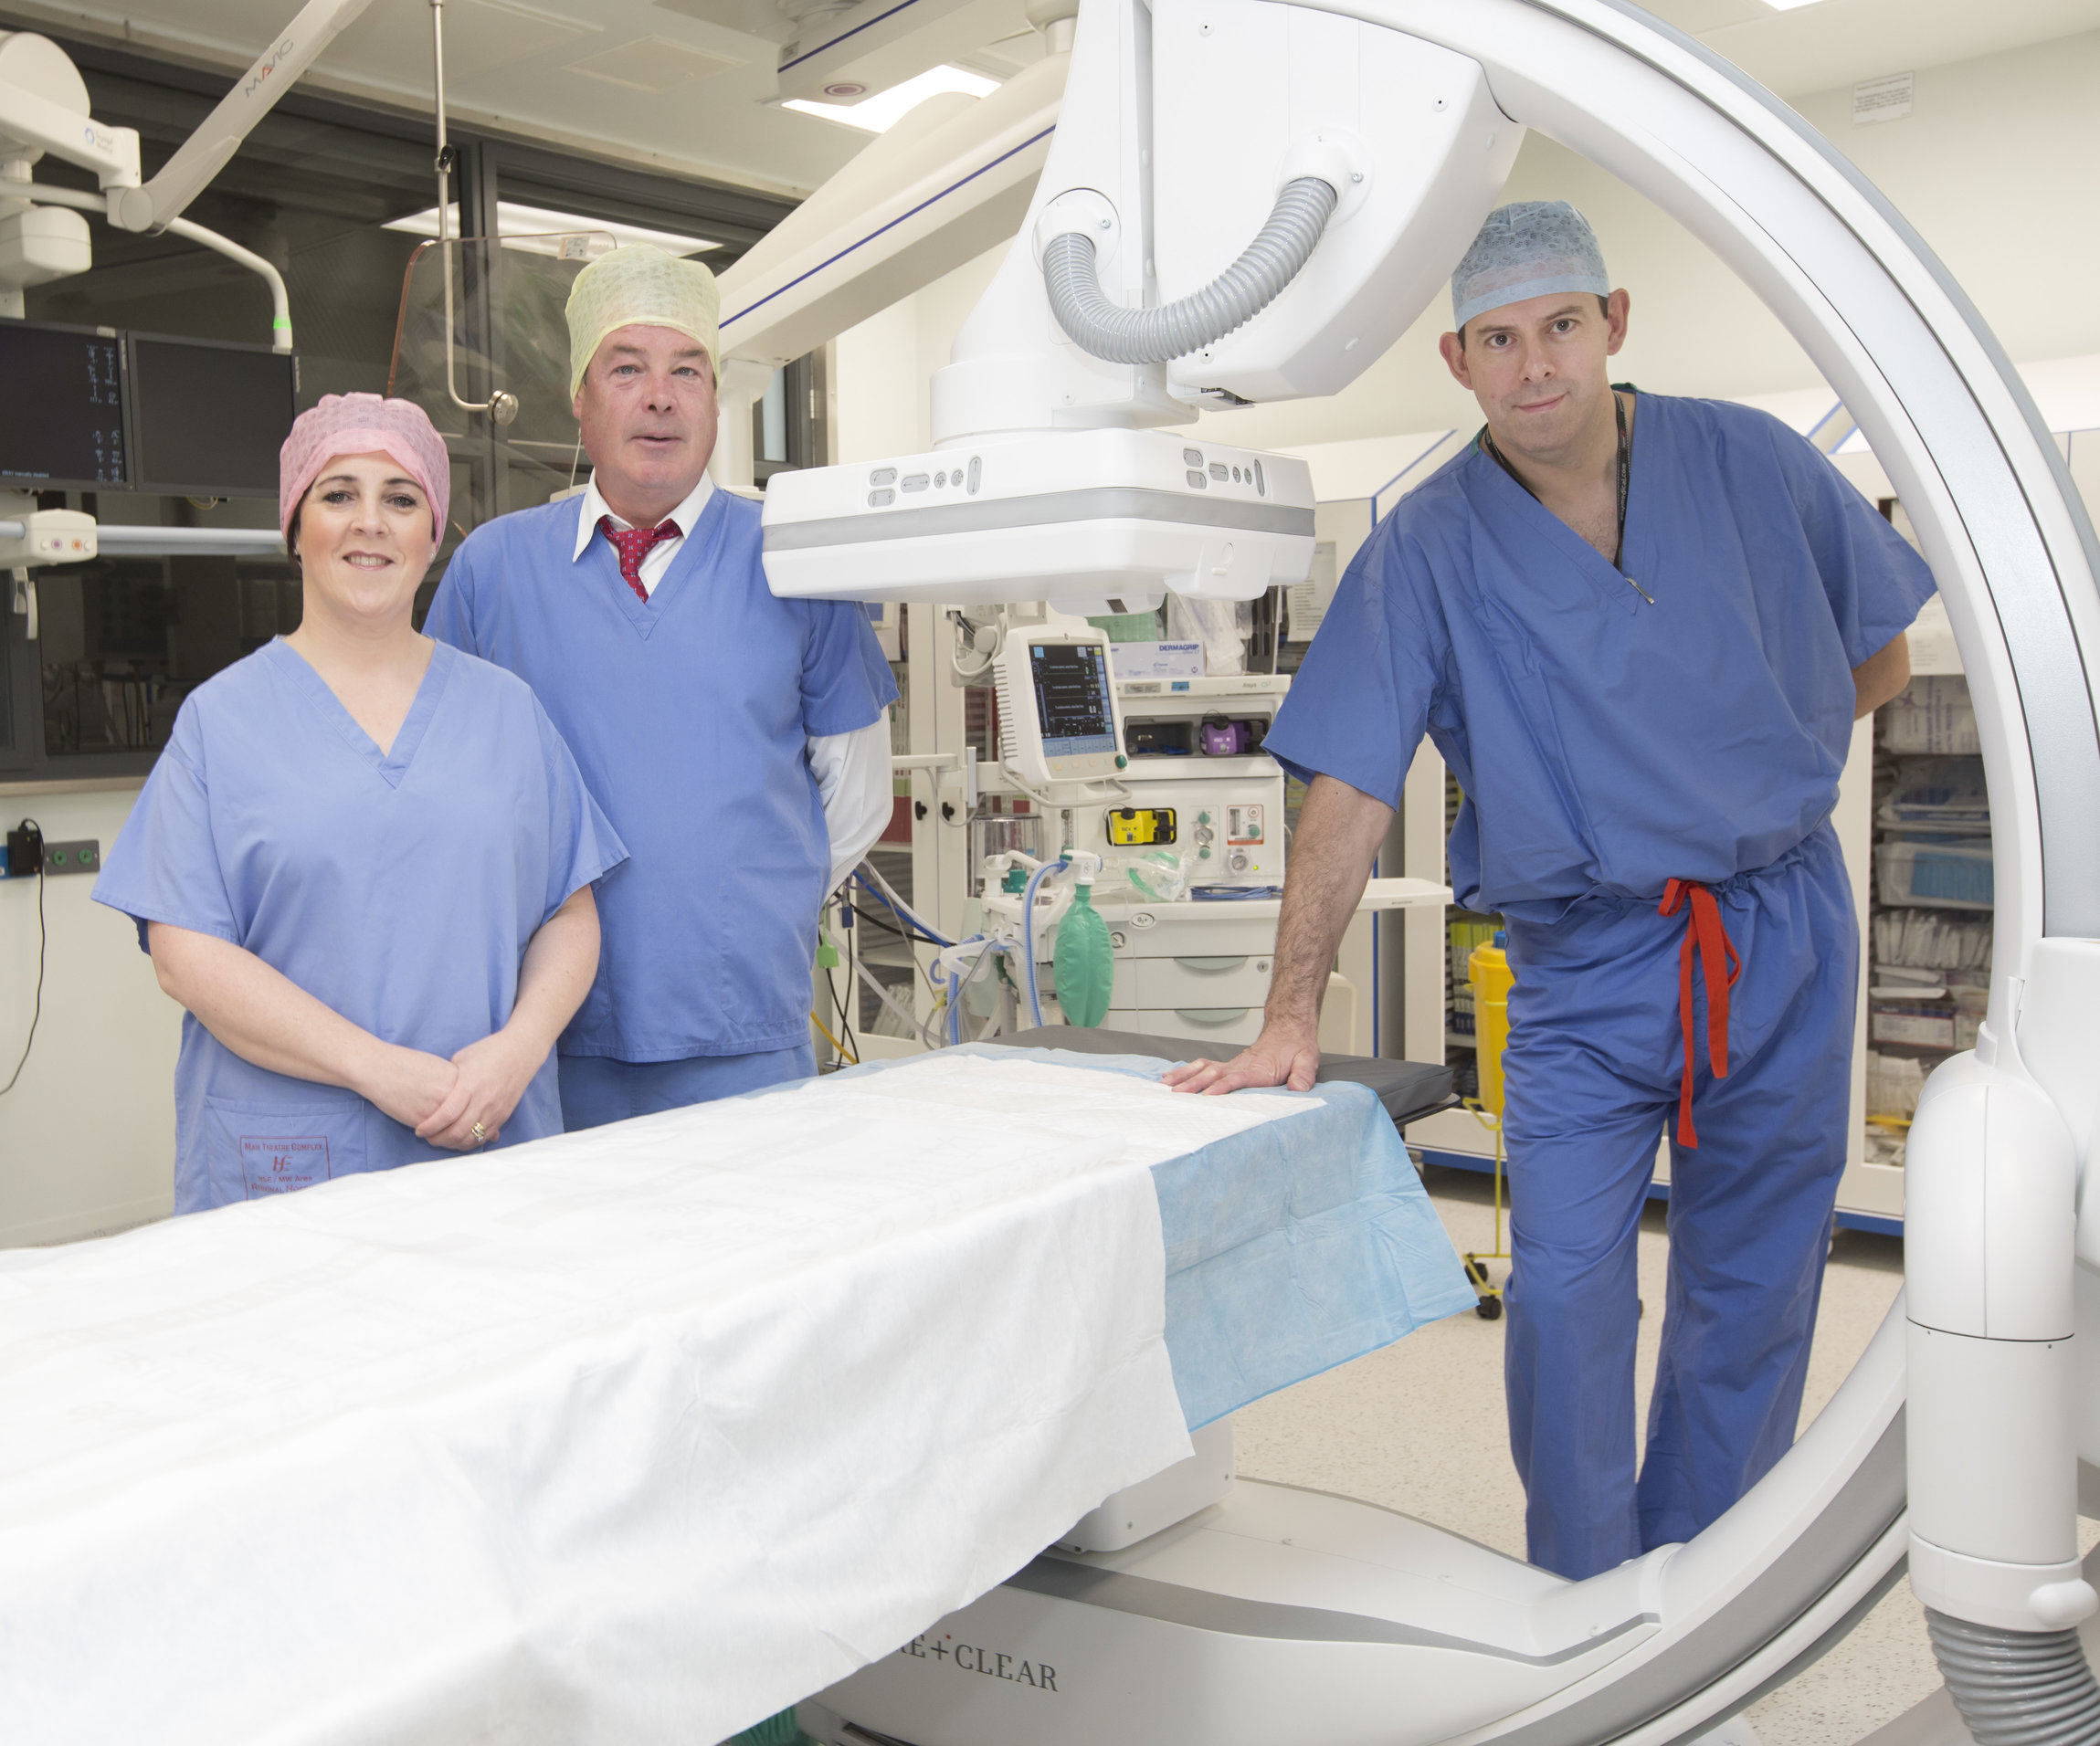 new Hybrid Operating Theatre